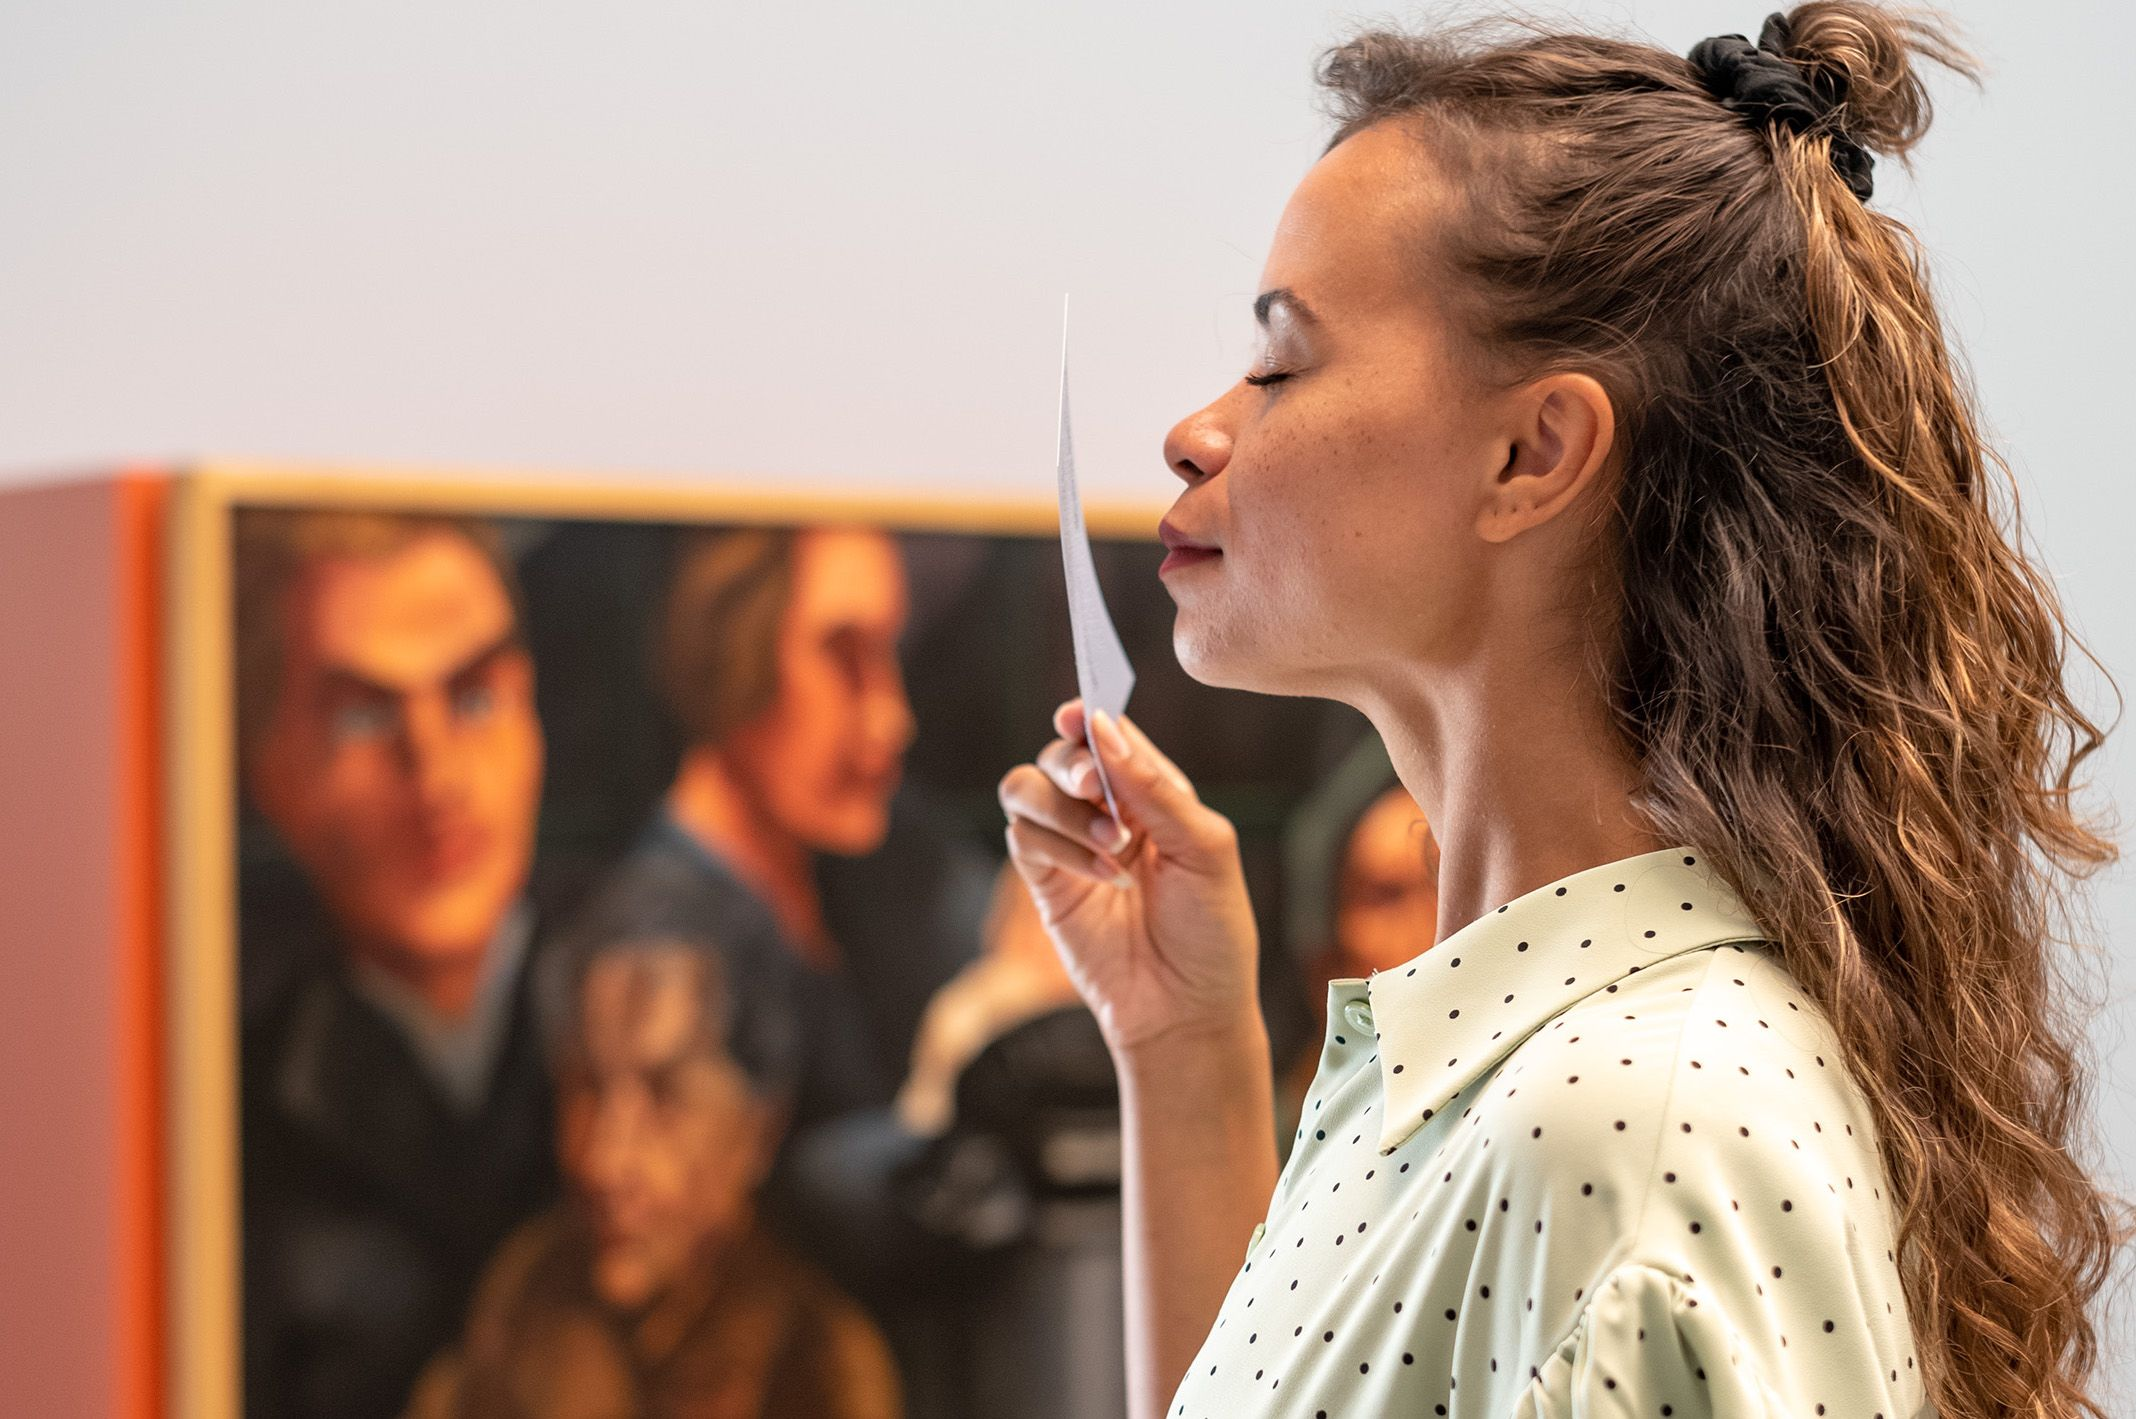 Van Abbemuseum launches the Netherlands' first, fully multi-sensory exhibition   MuseumNext